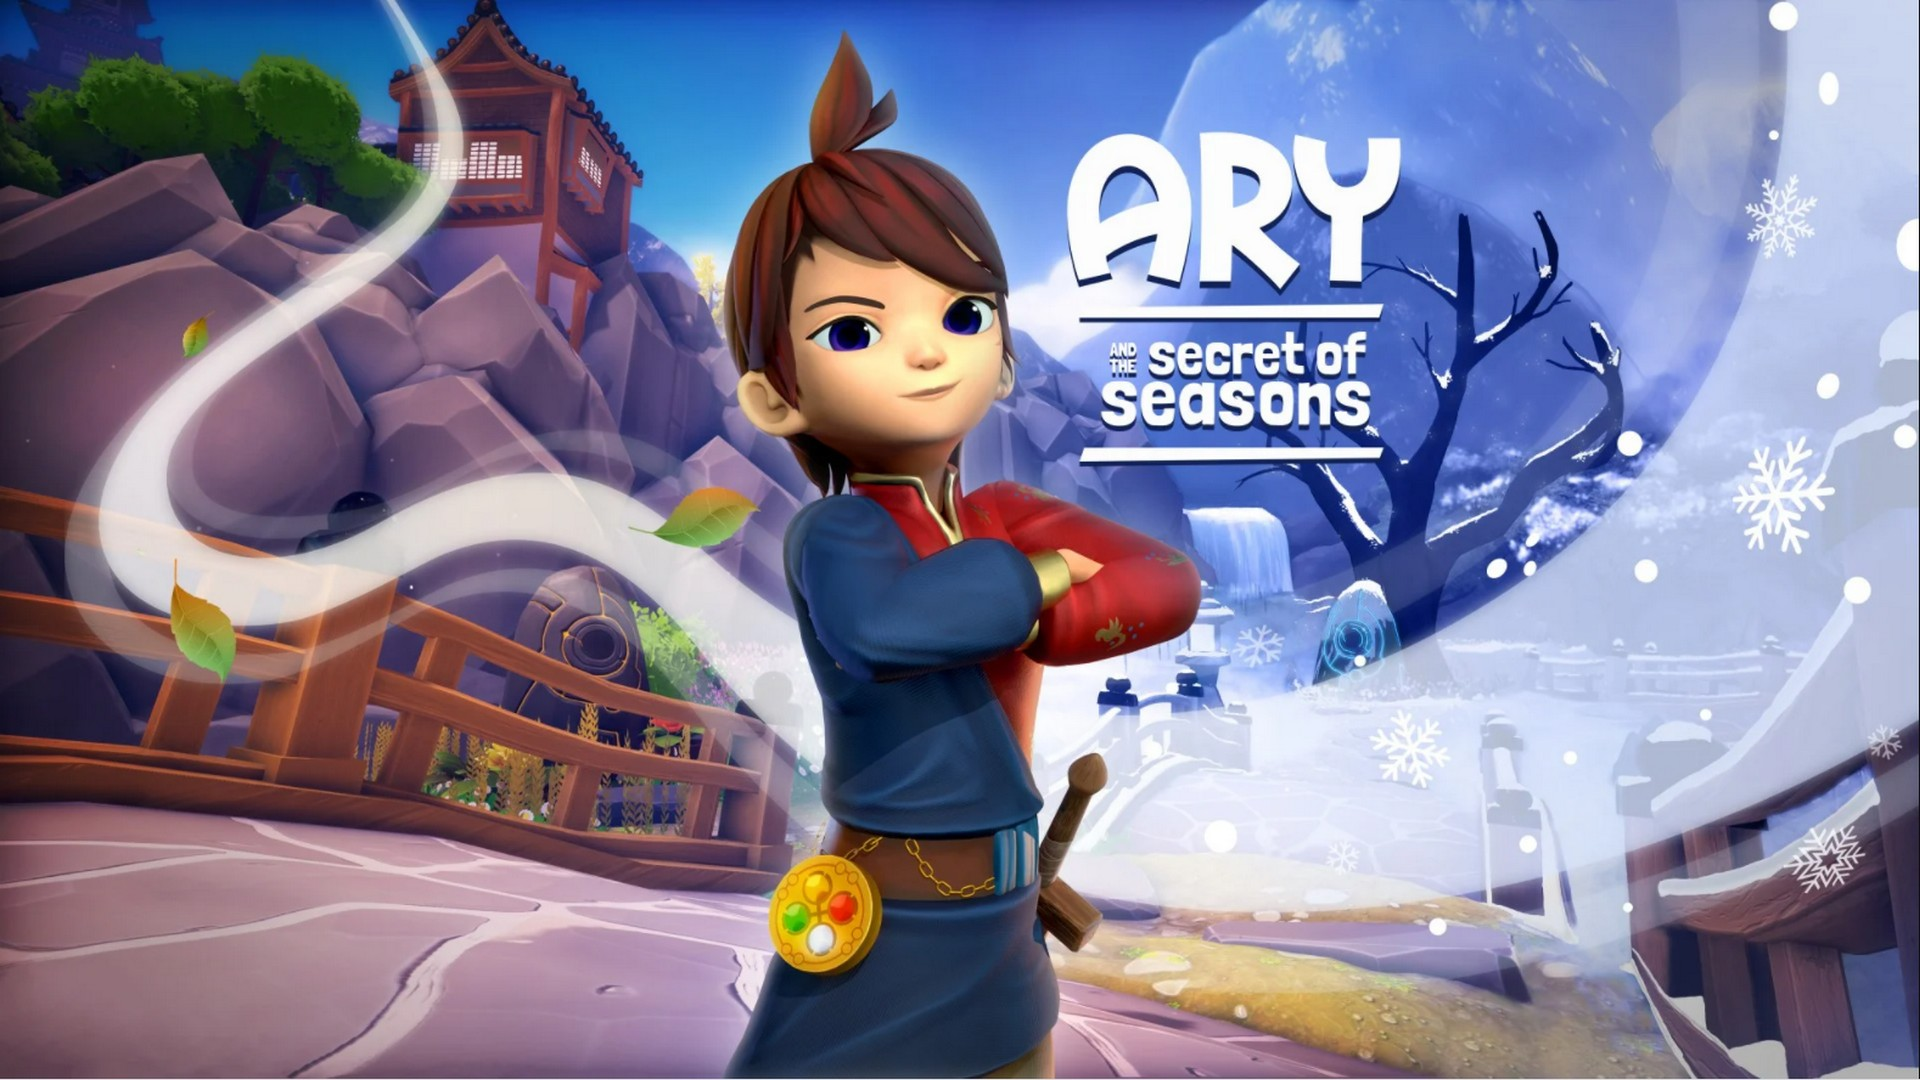 Ary And The Secret Of Seasons is Out Now